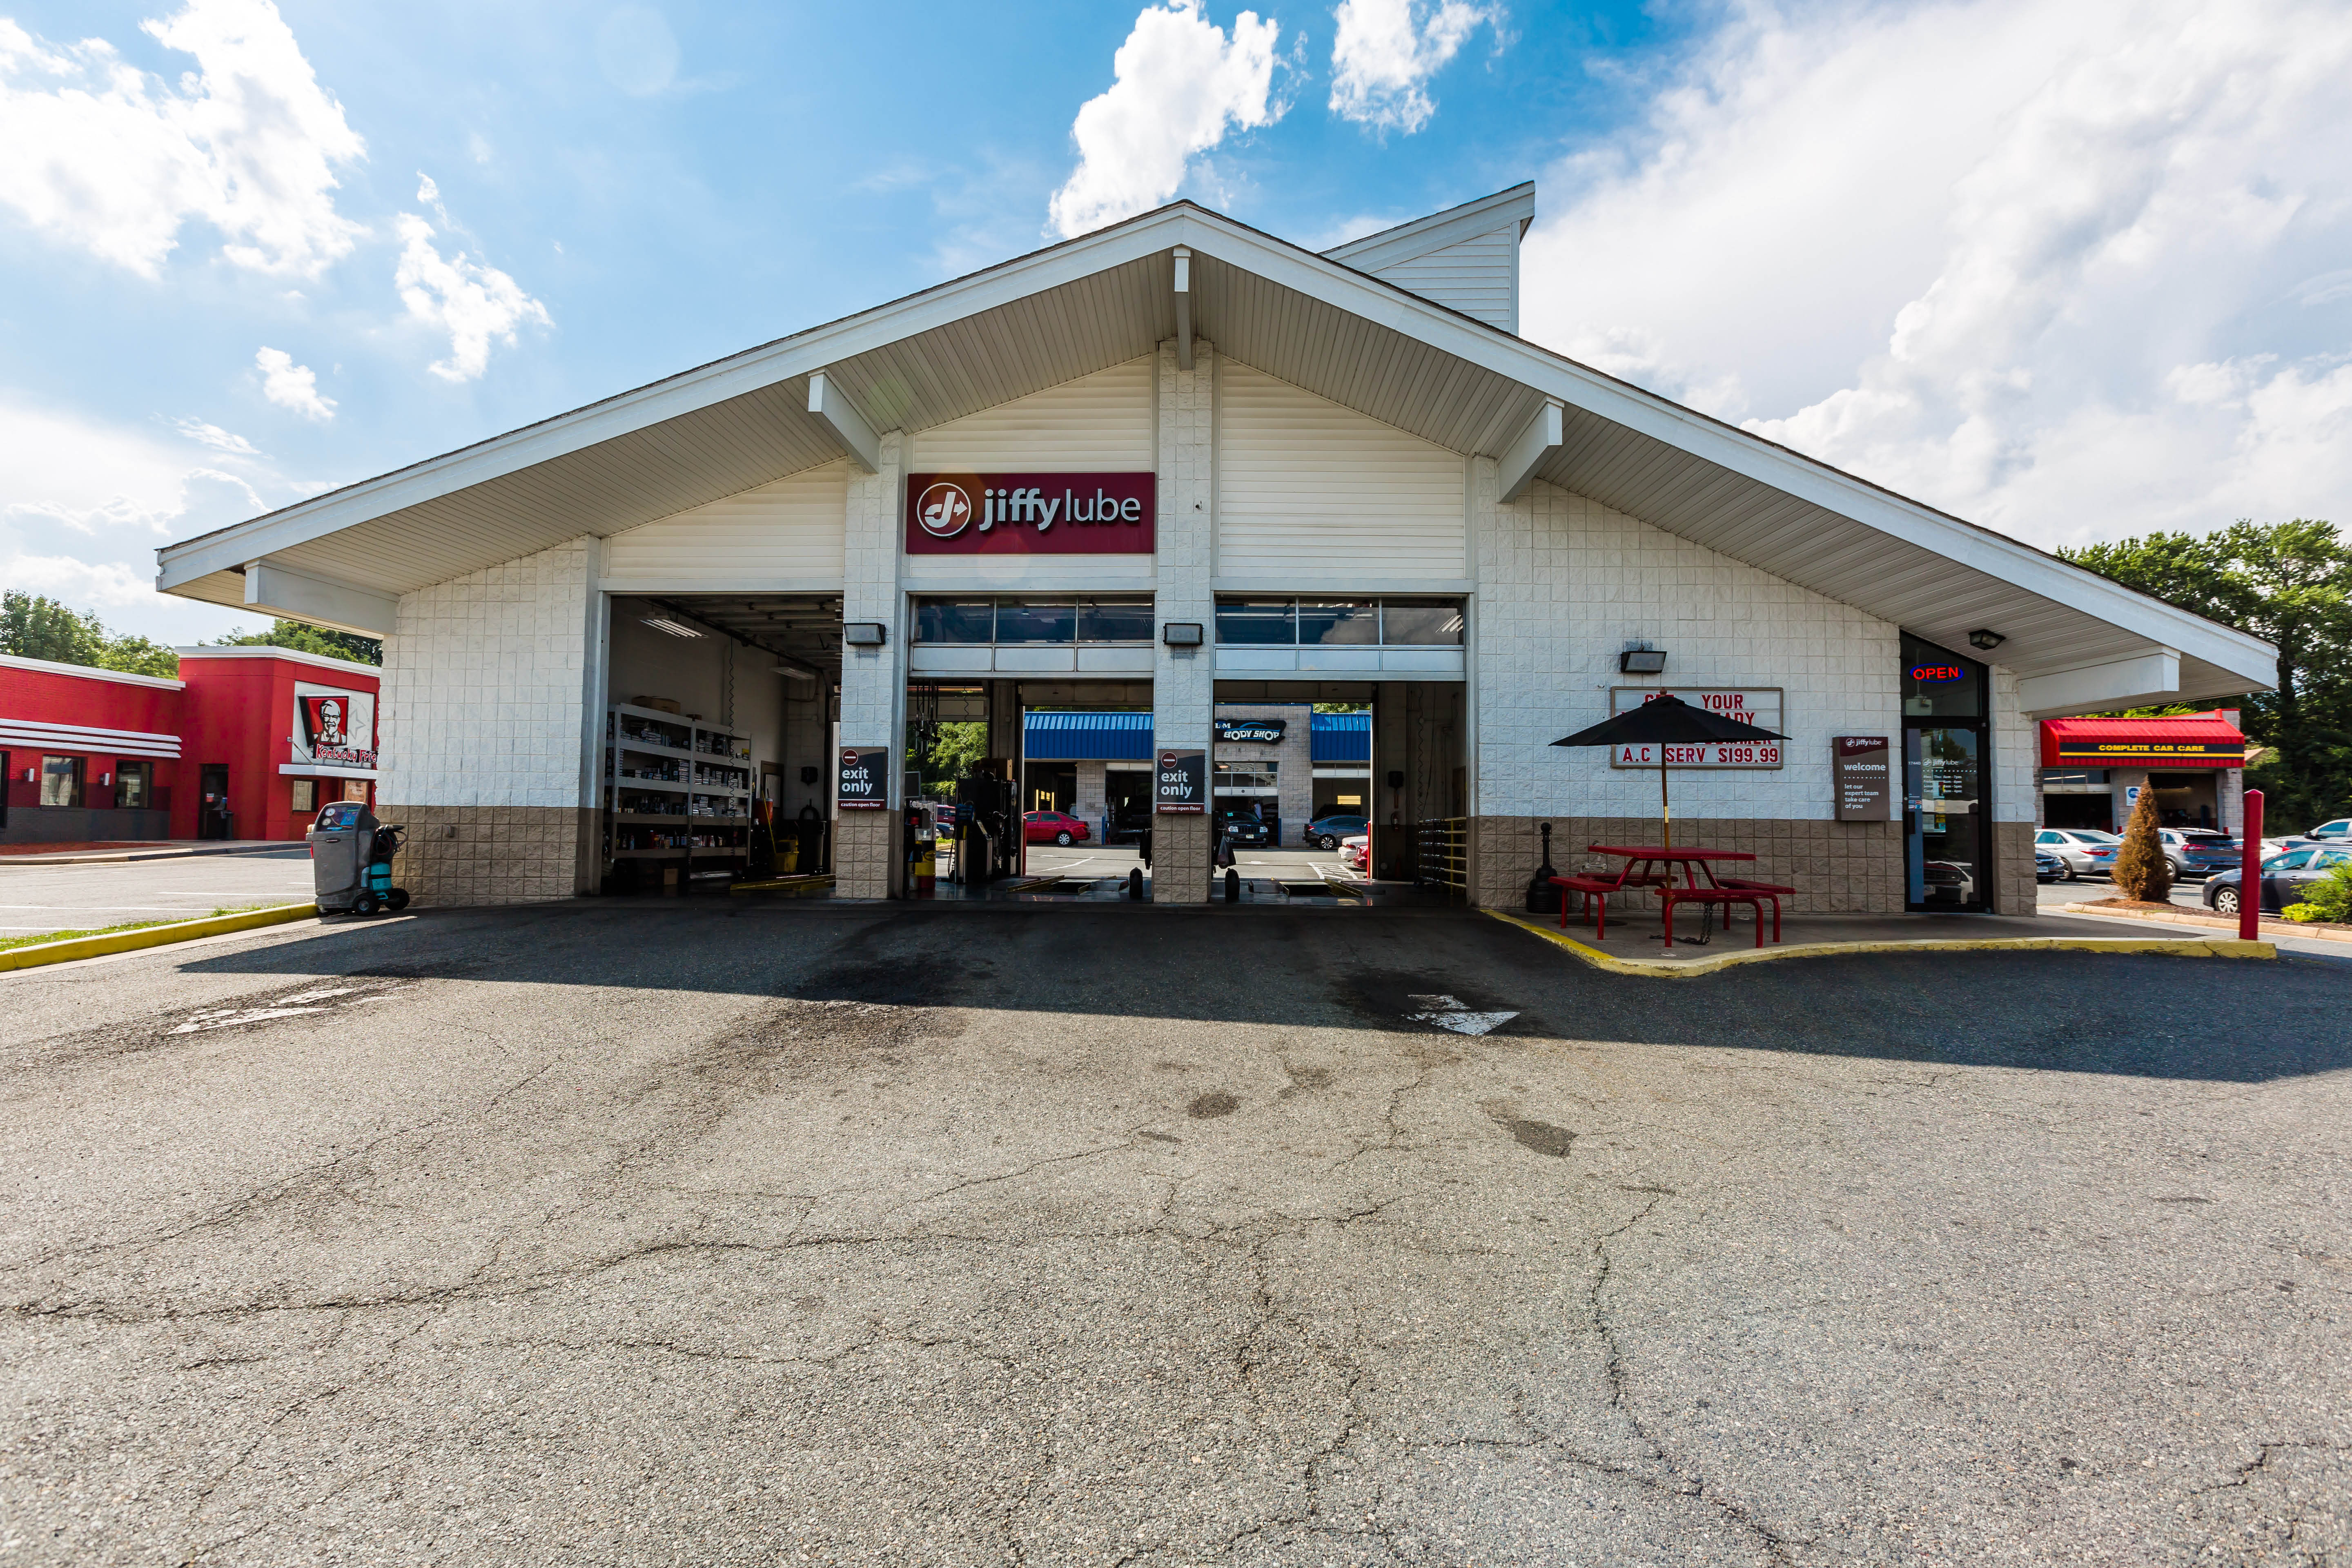 Visit Jiffy Lube in Dumfries or other Virginia Oil Change locations